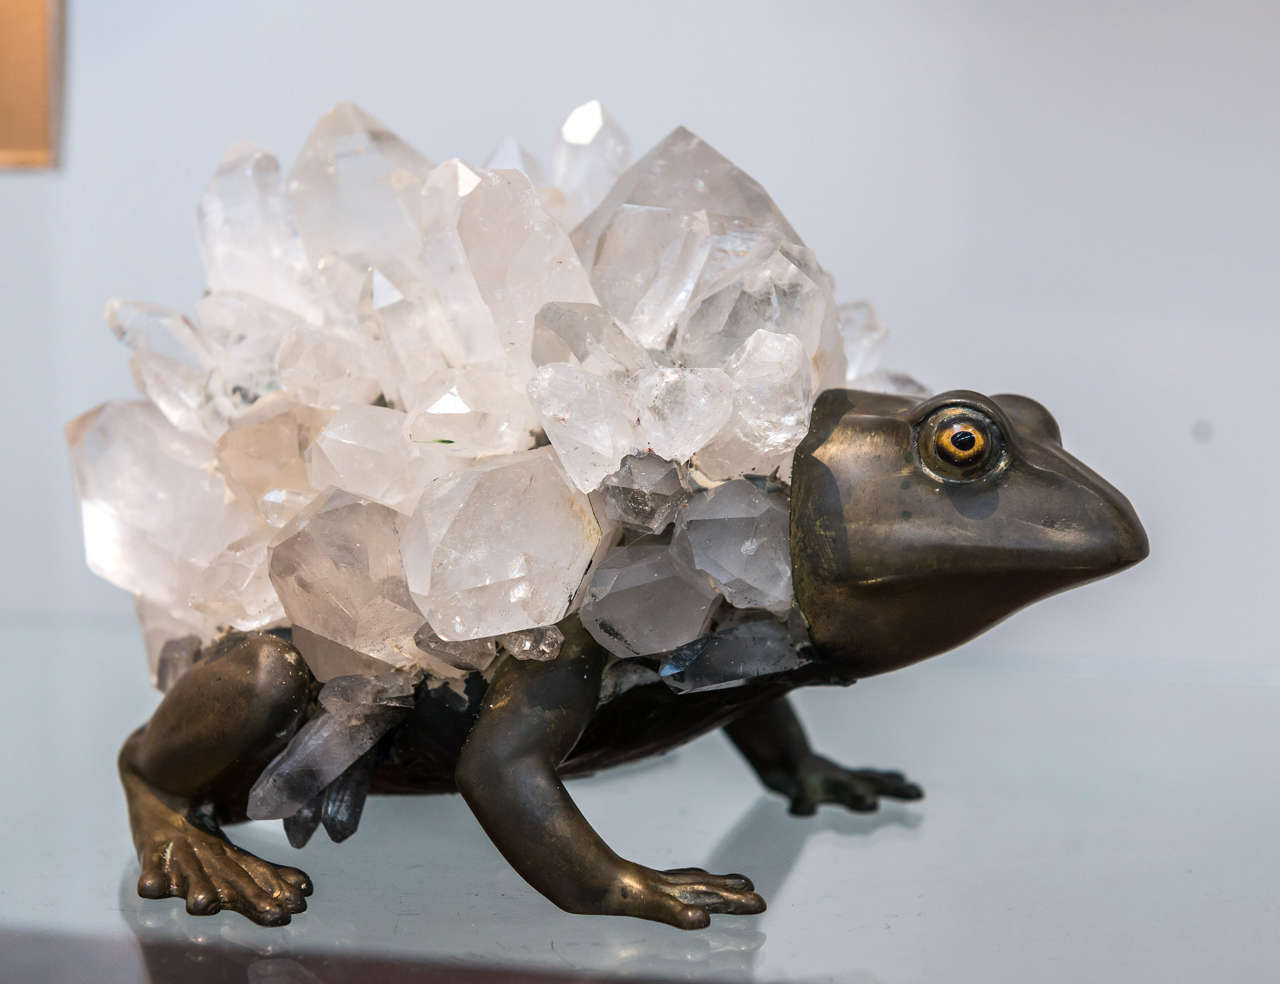 A captivating and unusual sculpture of a frog by Anthony REDMILE (England 20th century) in patinated bronze, overlaid with quartz.